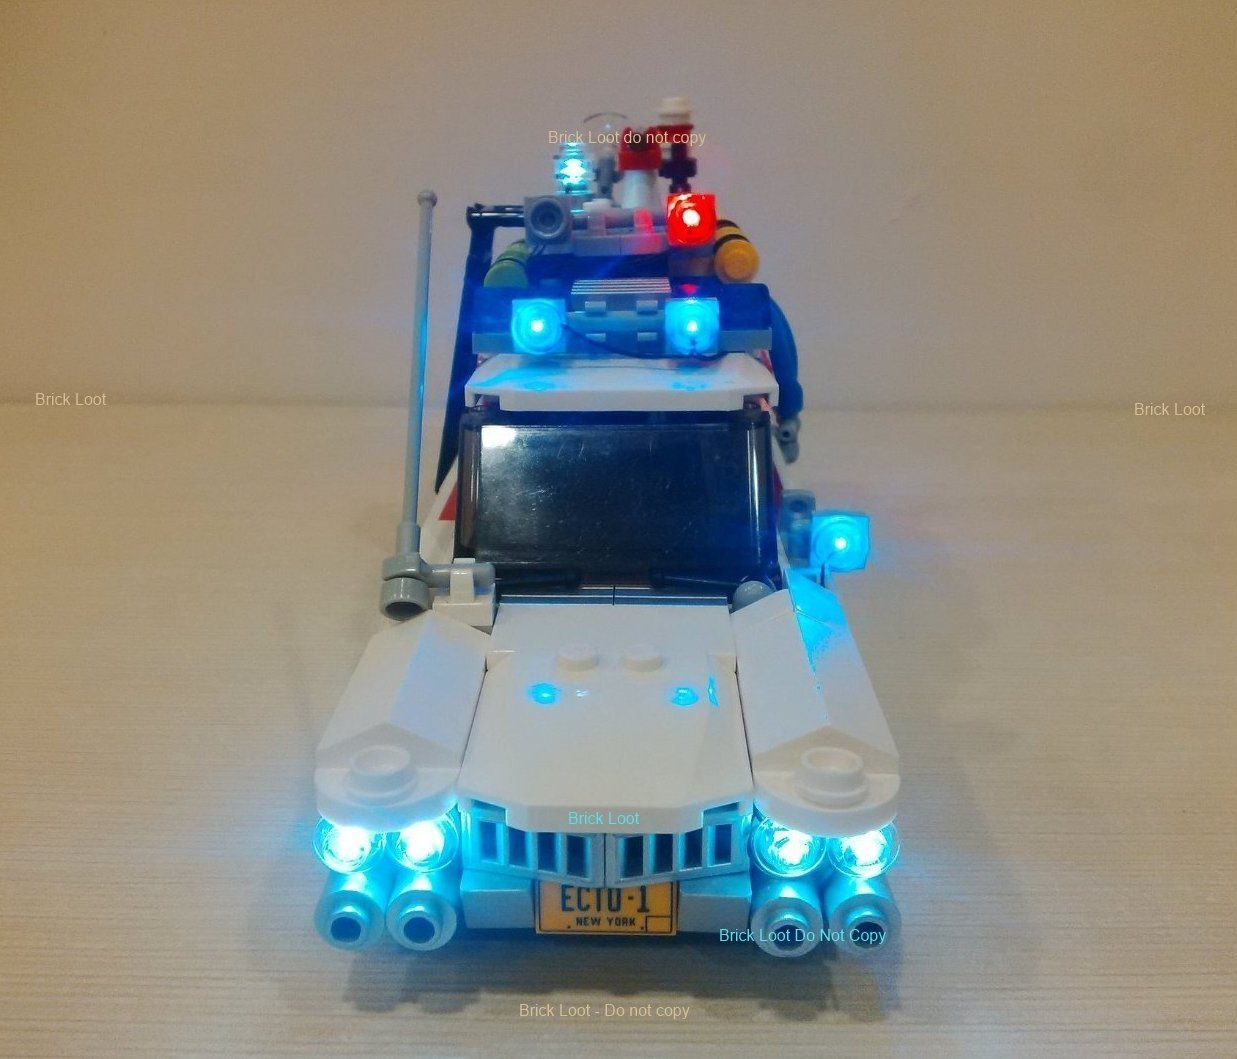 Ghostbusters Ecto-1 Lighting Kit for Lego 21108 (Car Not Included) Light Up & Buy Ghostbusters Ecto-1 Lighting Kit for Lego 21108 (Car Not ...